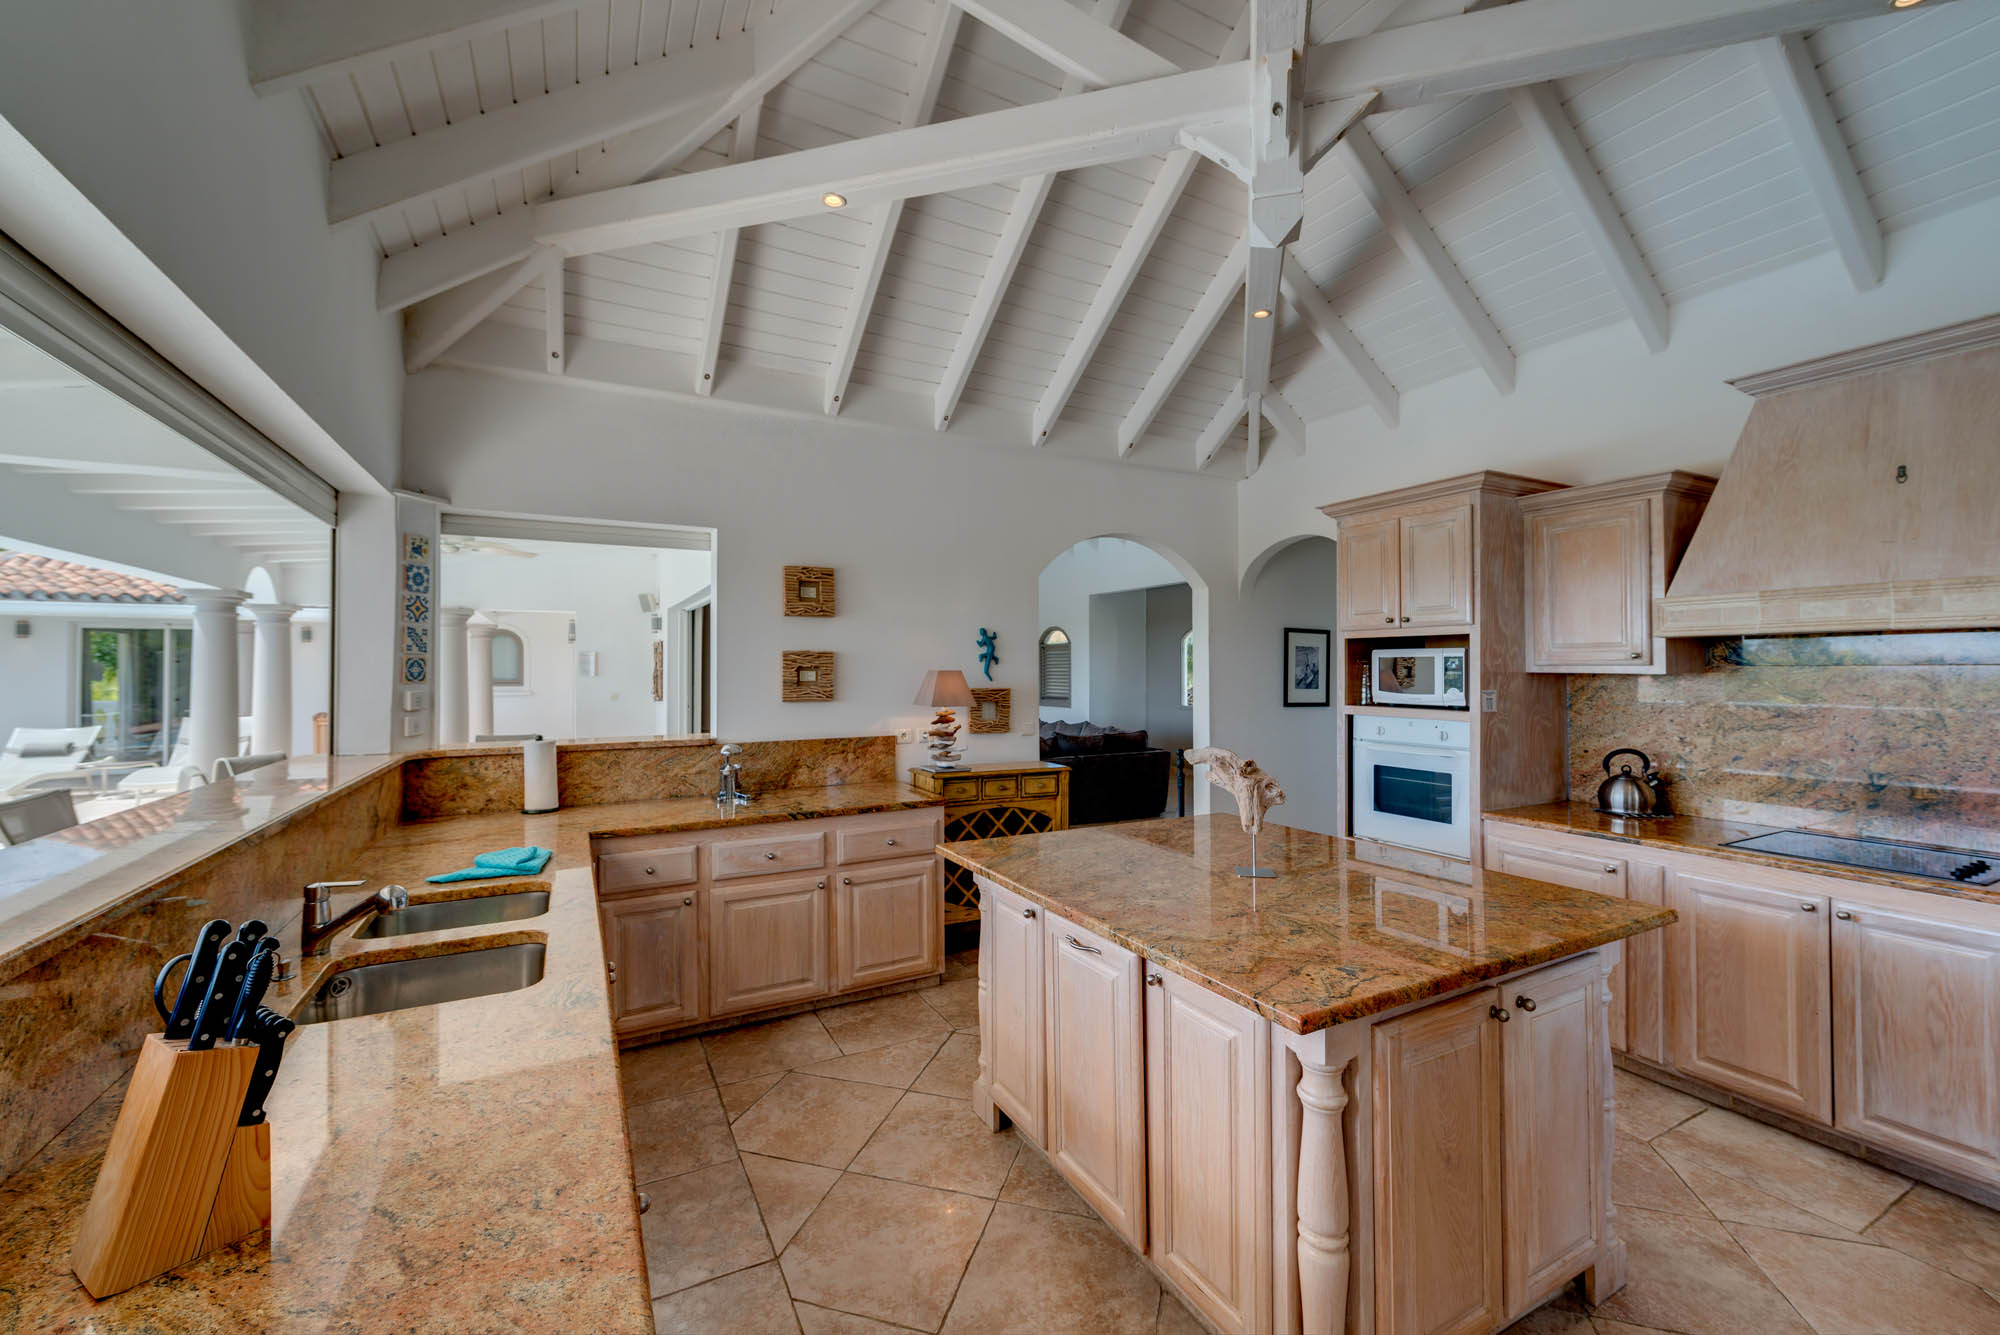 The elegant and fully equipped kitchen with everything you may need while on vacation in the French West Indies.